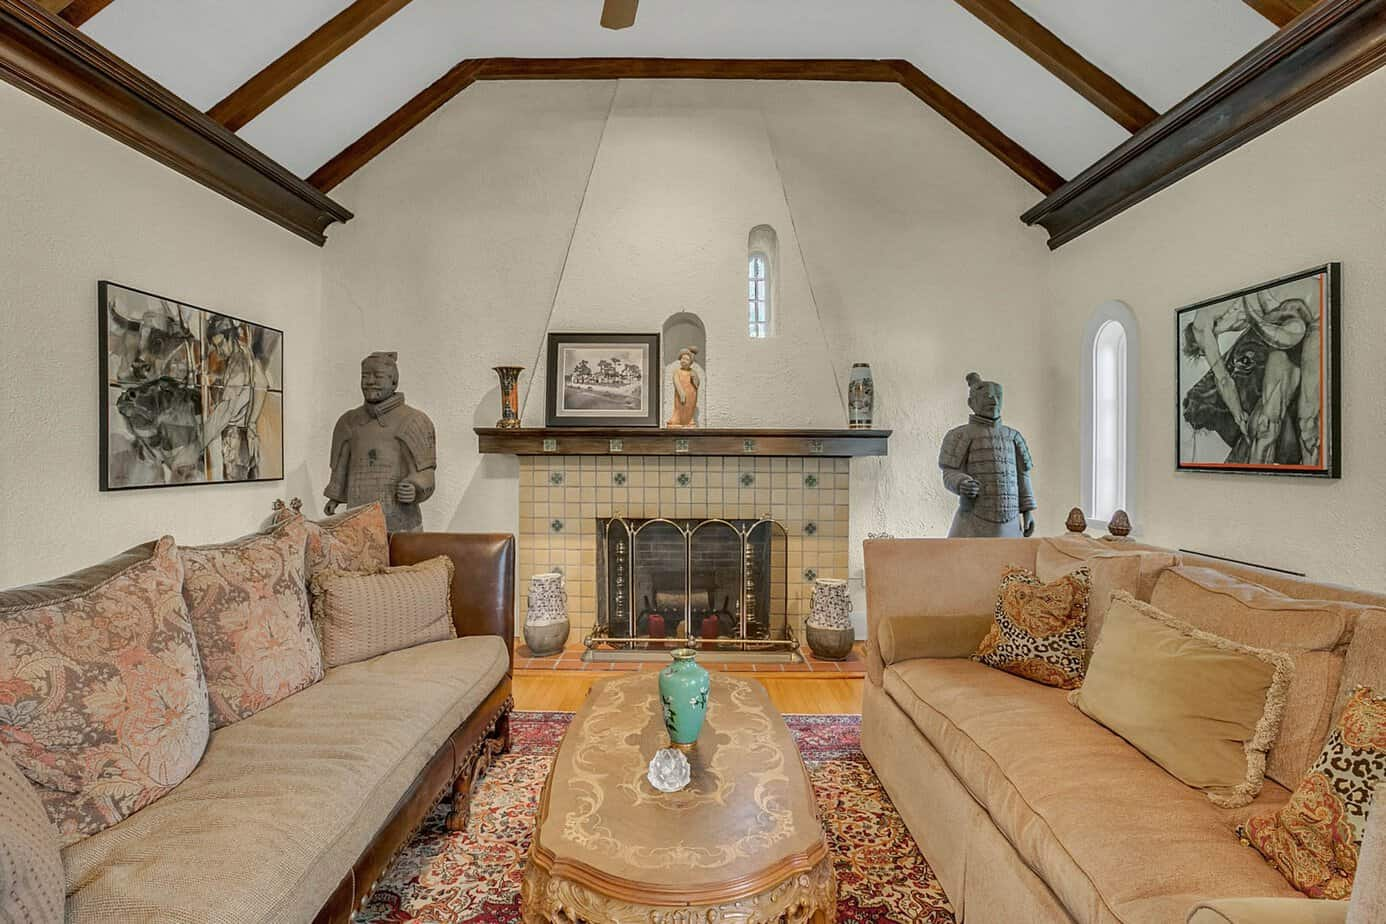 Picture of a grand room measuring 35x20 beamed with two couches, red rugs, decorative spanish fireplace, and arched windows in the home for sale at 4024 W Bay to Bay Tampa FL 33629